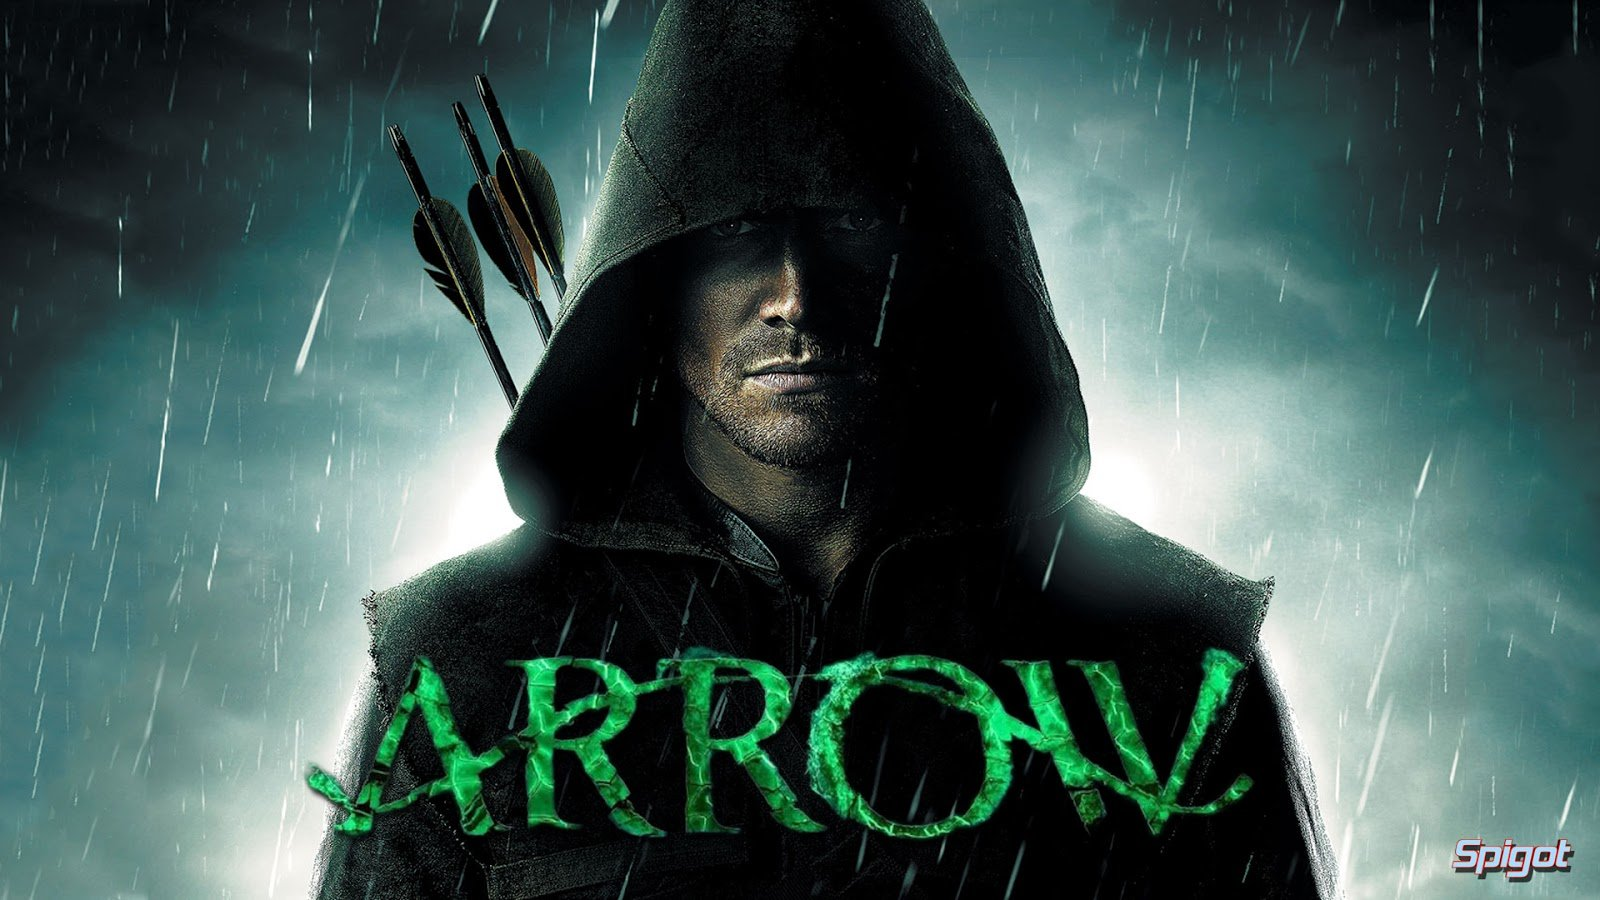 Random Arrow HD Widescreen Wallpaper 1600x900